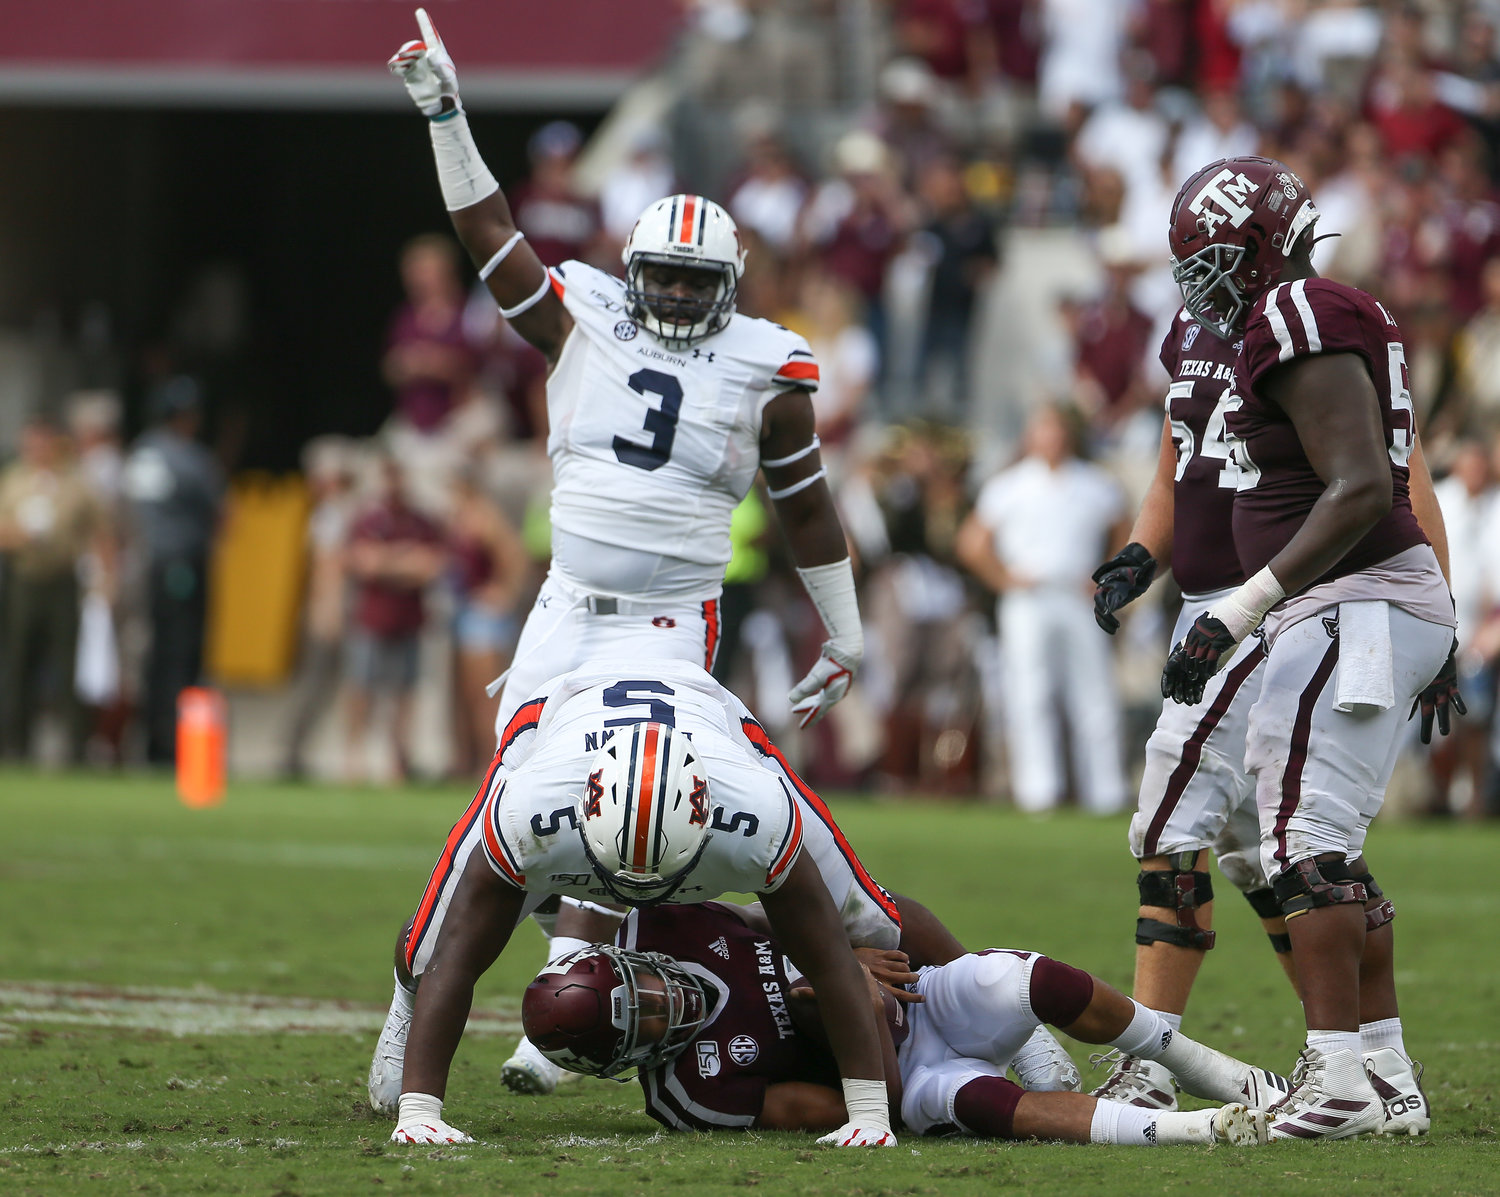 Auburn Tigers defensive end Marlon Davidson (3) celebrates after defensive tackle Derrick Brown (5) sacks Texas A&M Aggies quarterback Kellen Mond (11) during an NCAA football game between Texas A&M and Auburn at Kyle Field in College Station, Texas, on September 21, 2019.